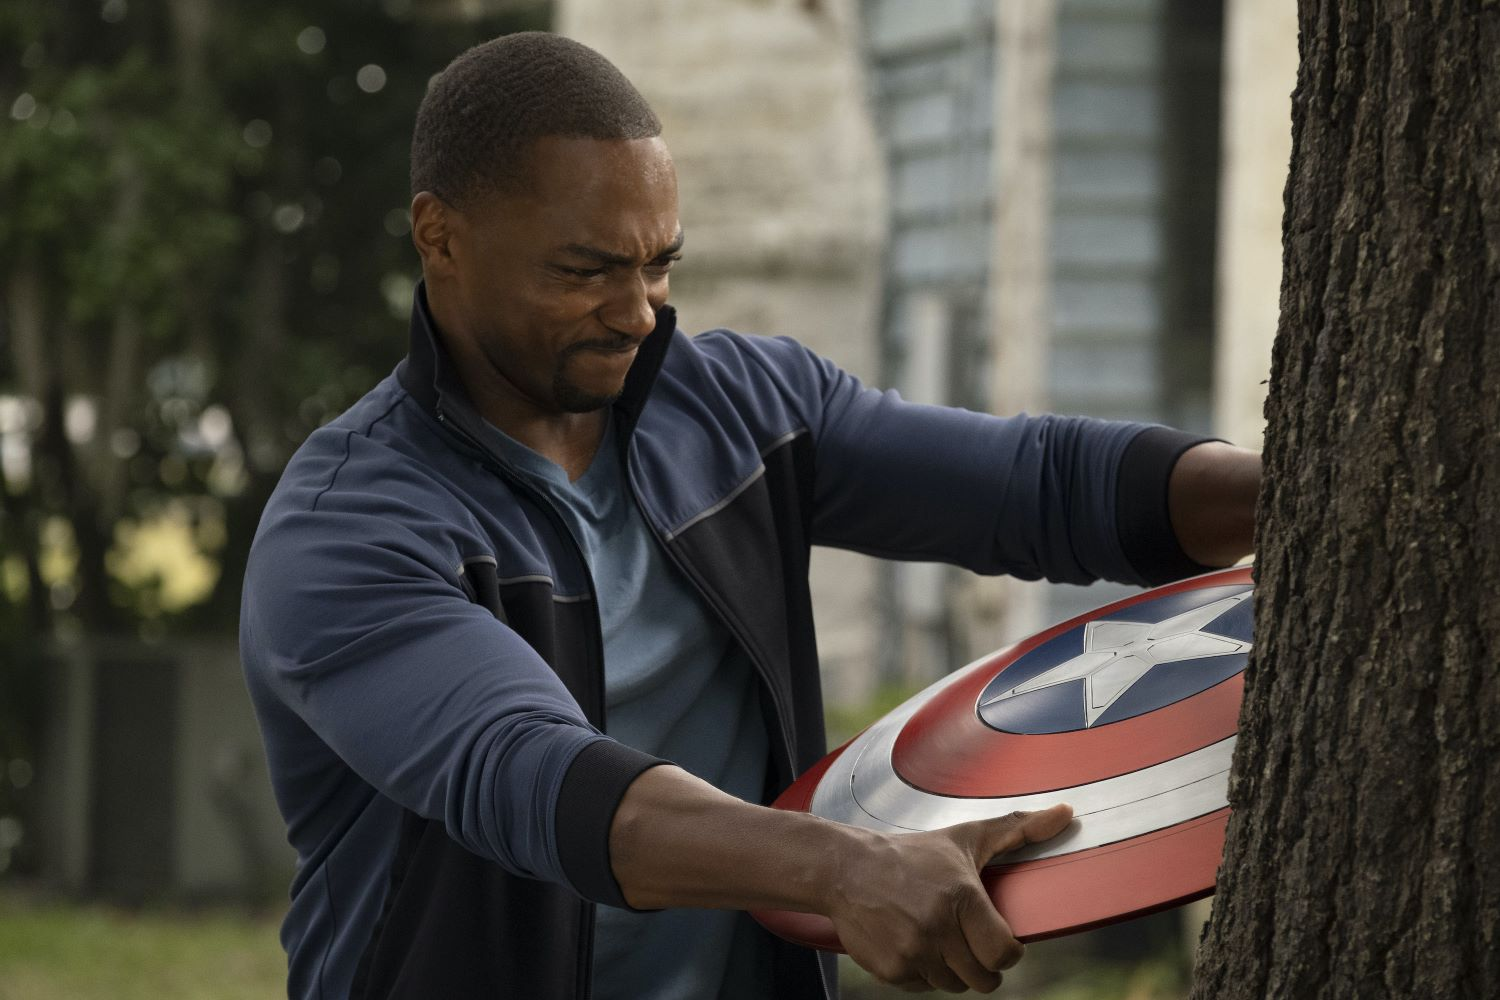 Anthony Mackie as Sam Wilson in 'The Falcon and the Winter Soldier'